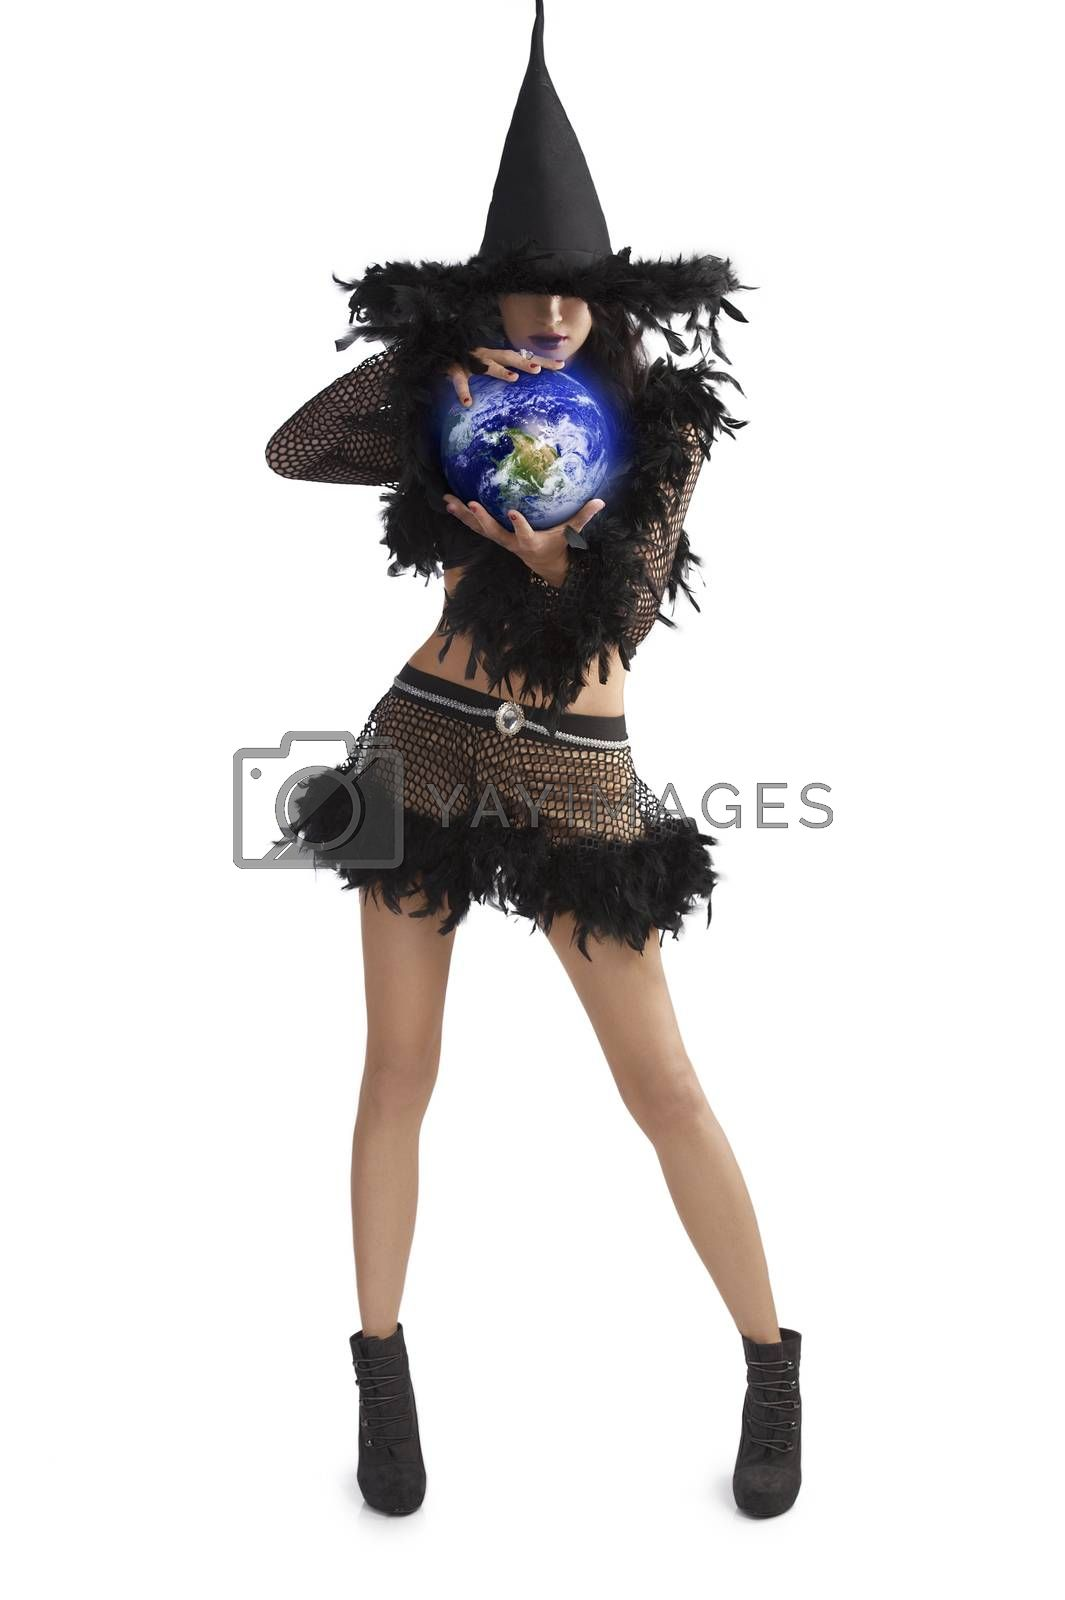 Royalty free image of girl in halloween dress holding world ball by fotoCD